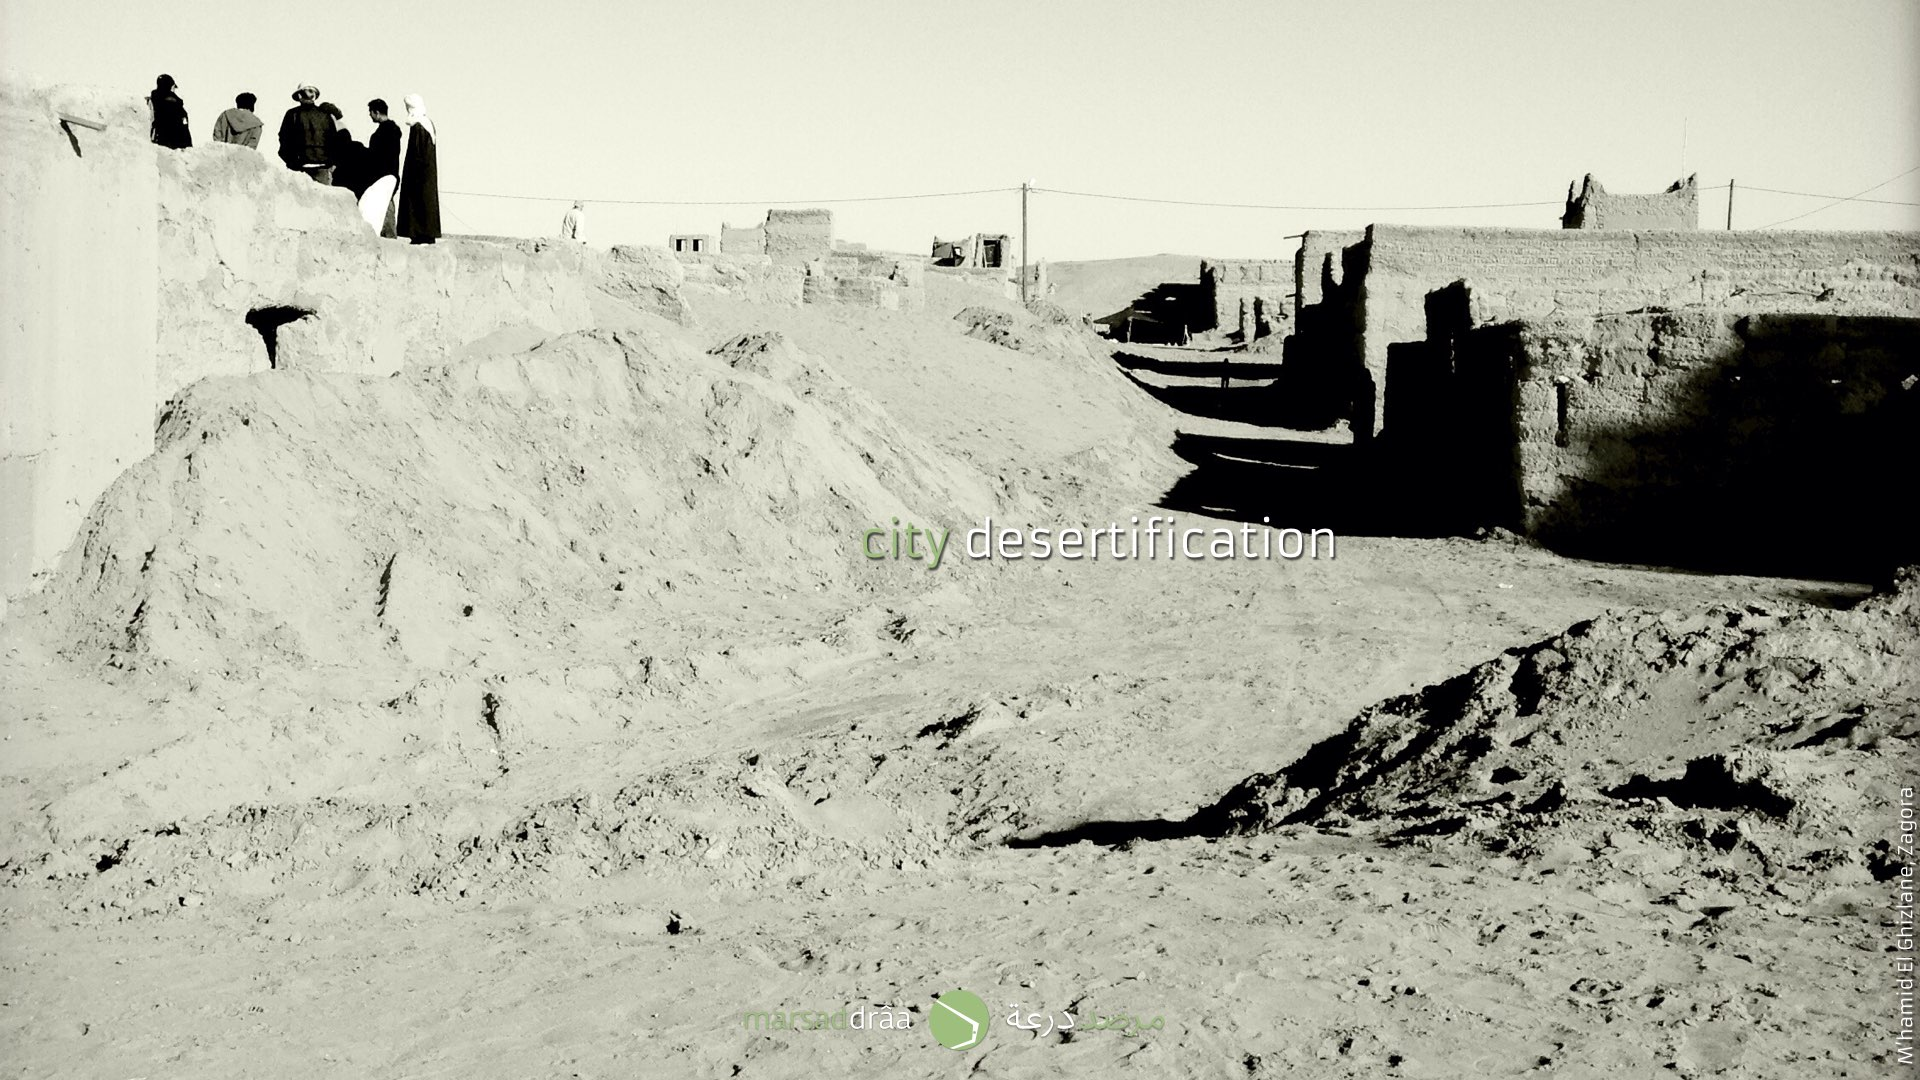 The dunes affect also cities, like M'hamid El Ghizlane where houses are buried by sand.